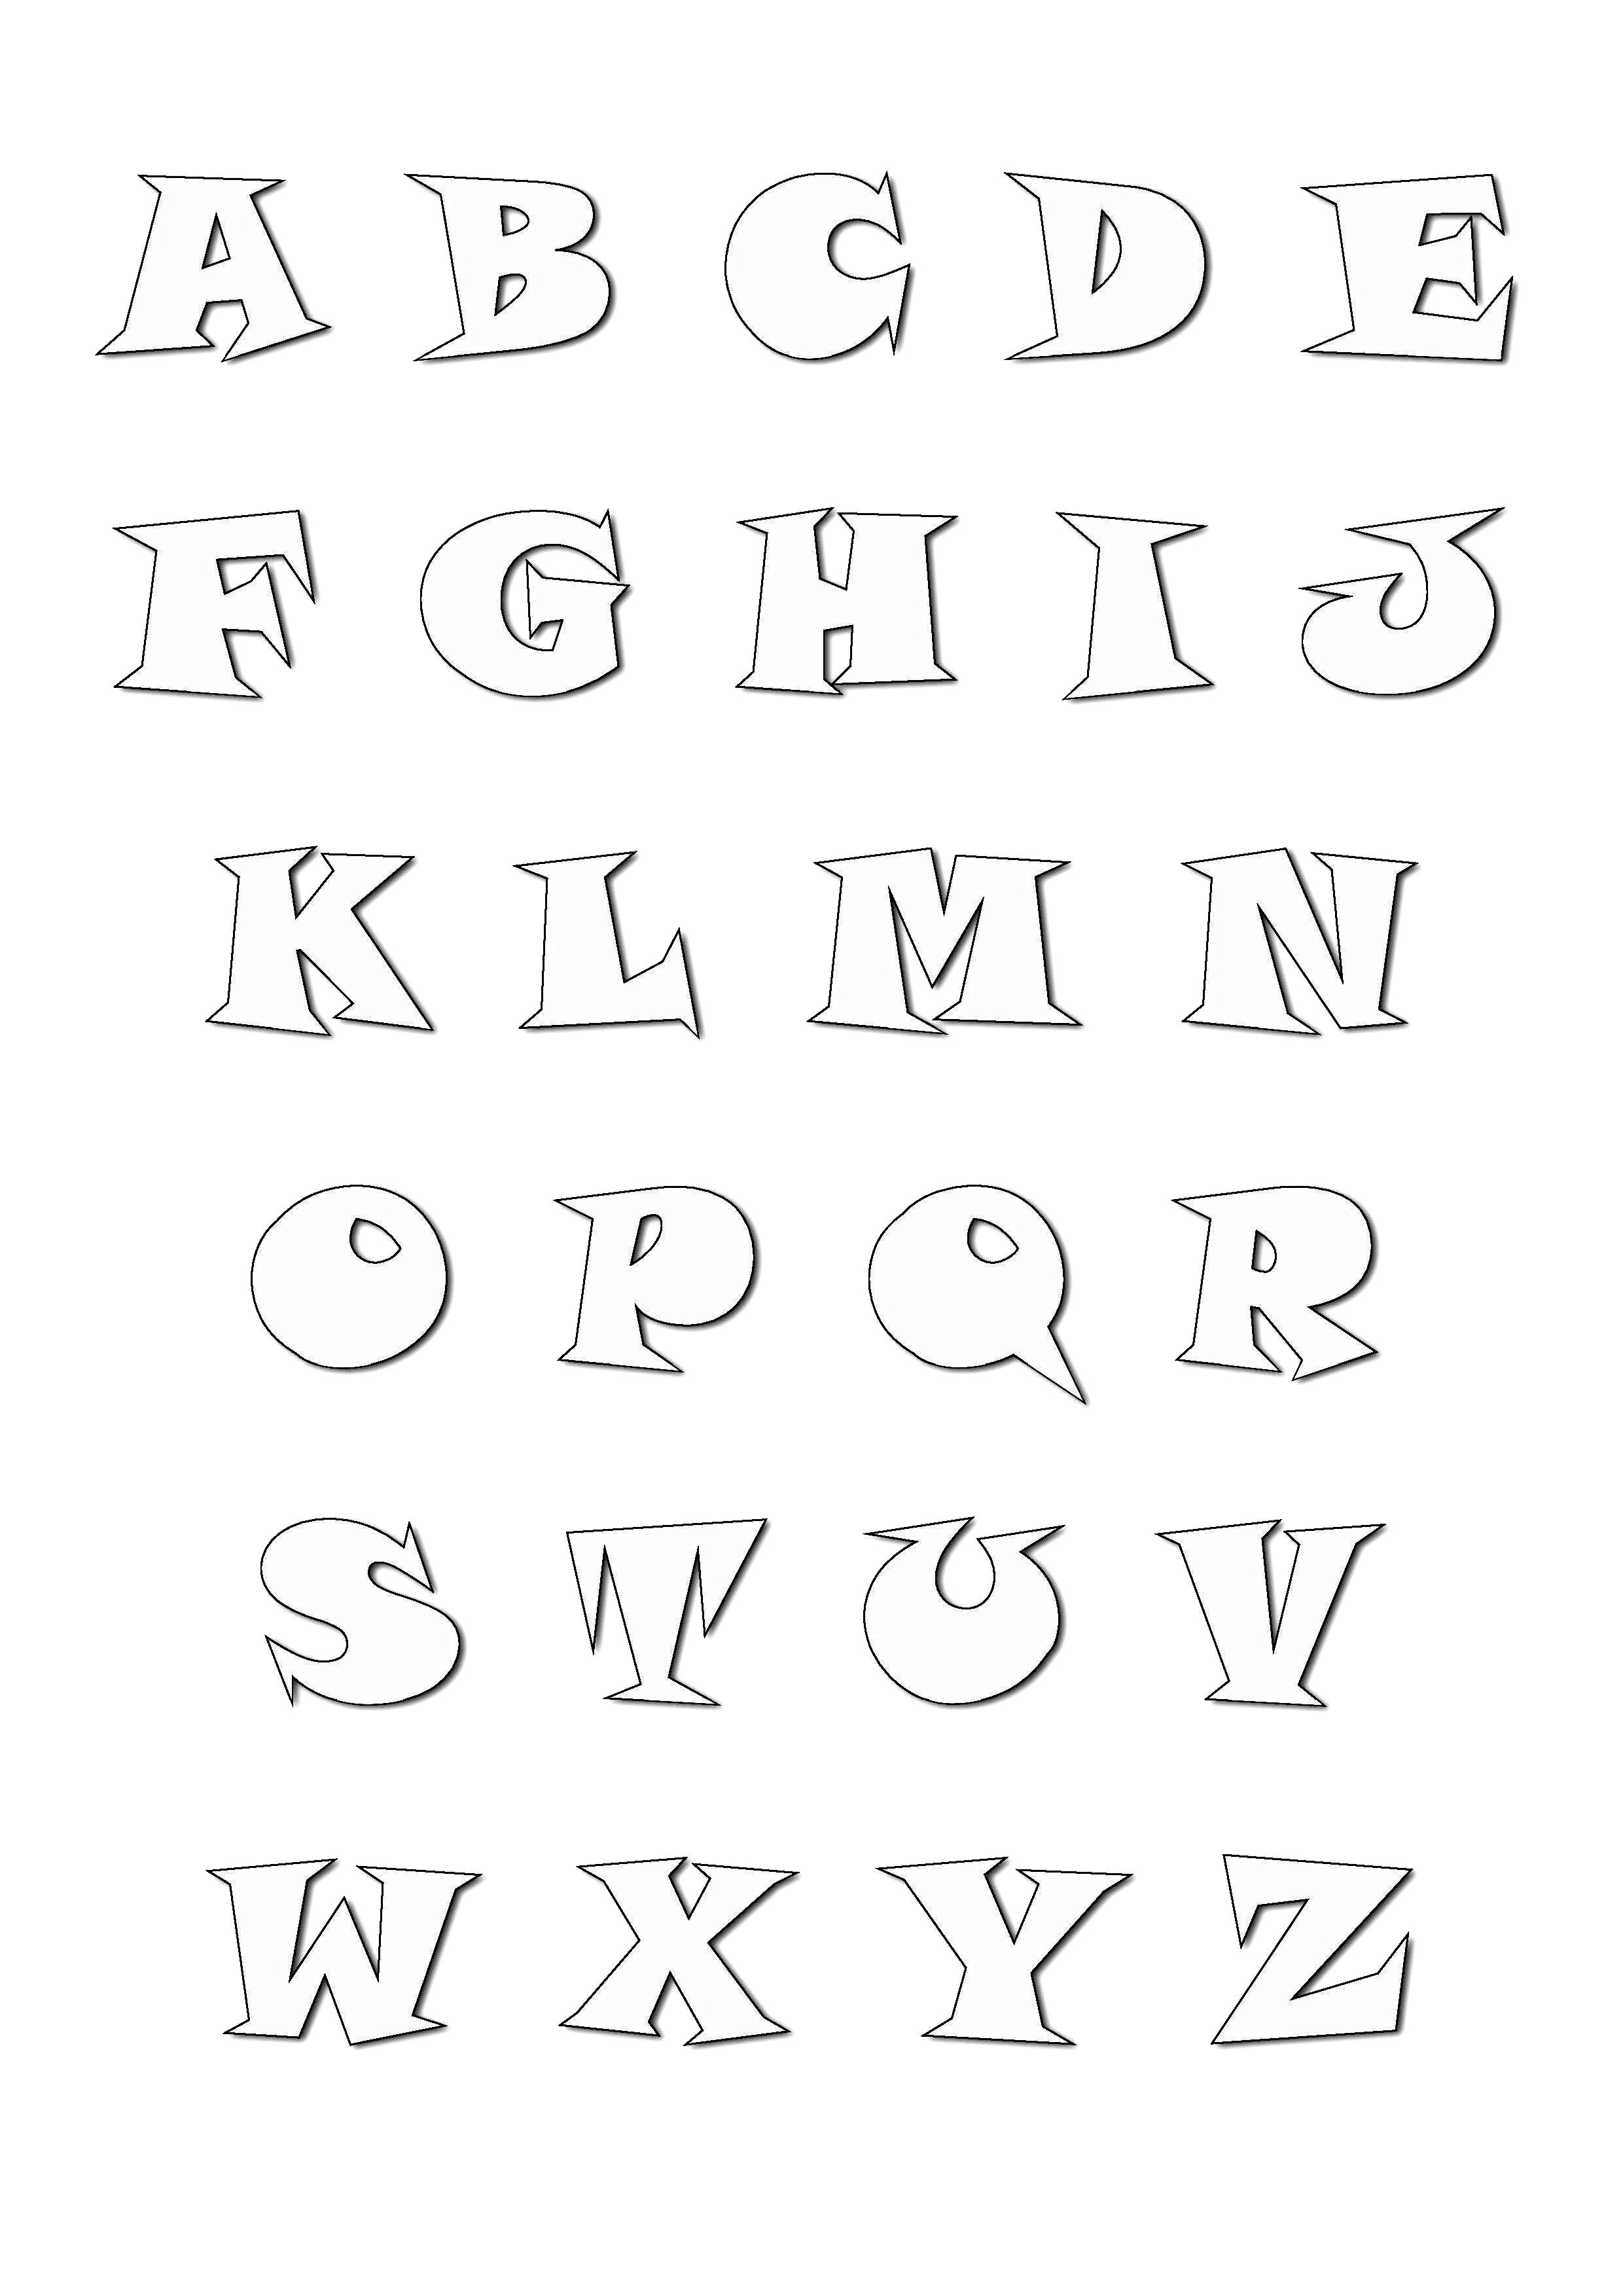 Alphabet coloring page to print and color for free : From A to Z (Cartoon font)